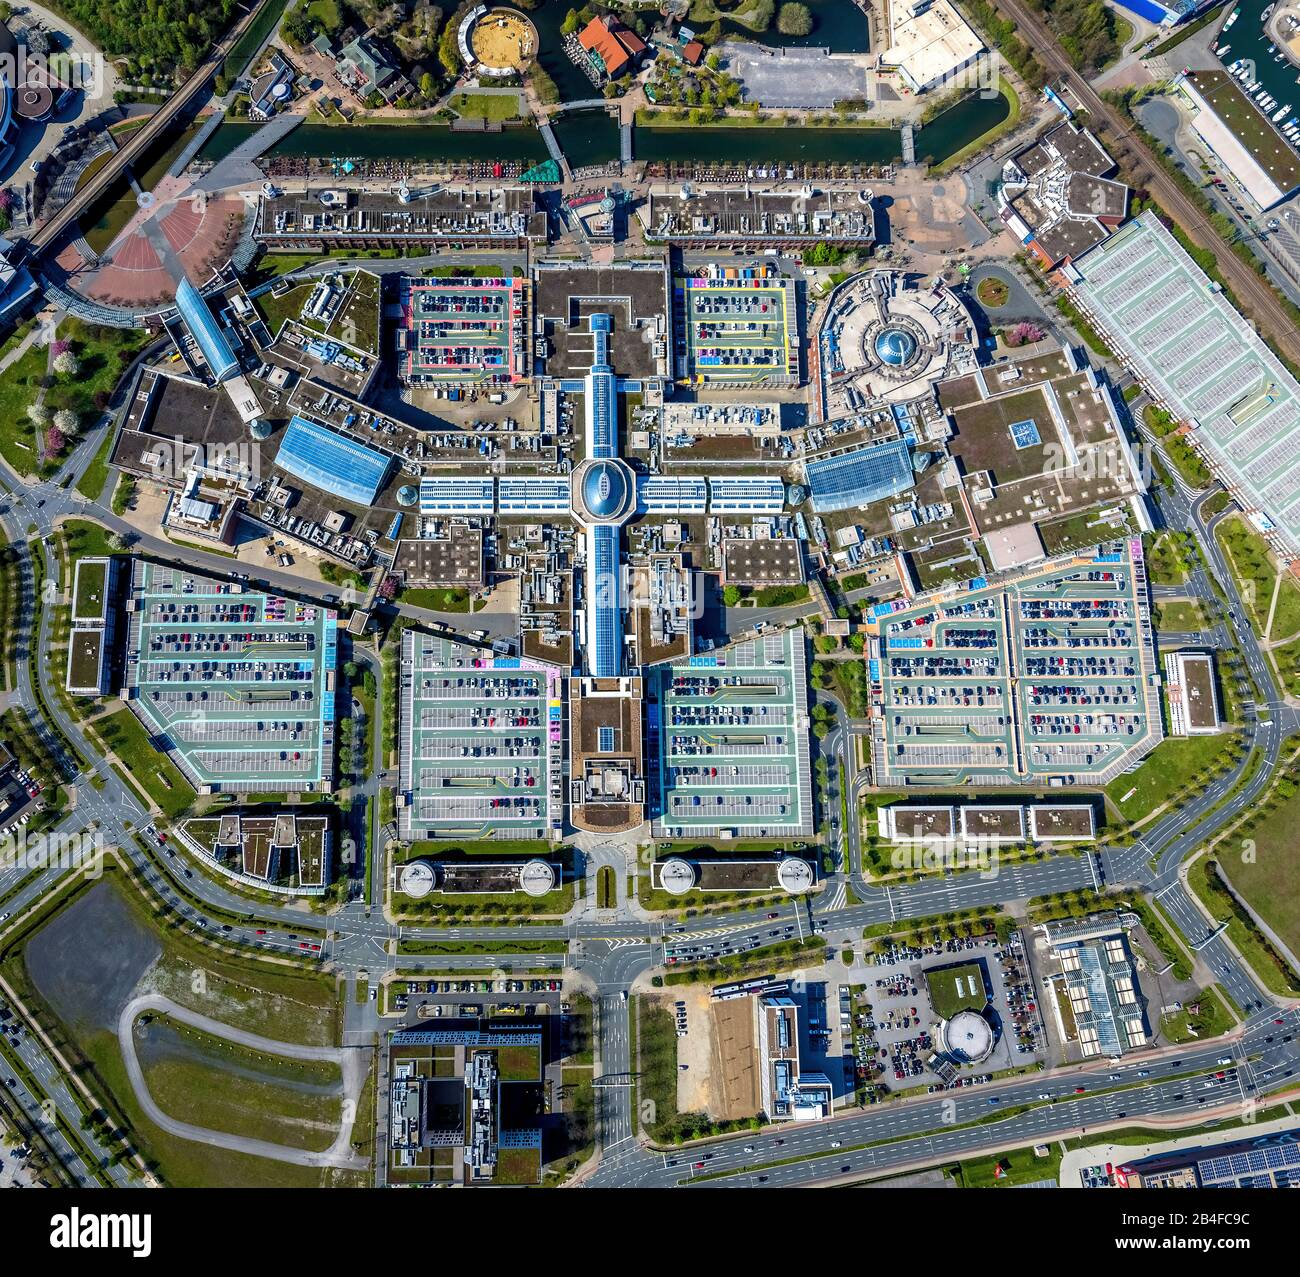 Aerial view of ECE shopping mall CENTRO in Oberhausen's new center in Oberhausen in the Ruhr area in the state of North Rhine-Westphalia, Germany. Stock Photo